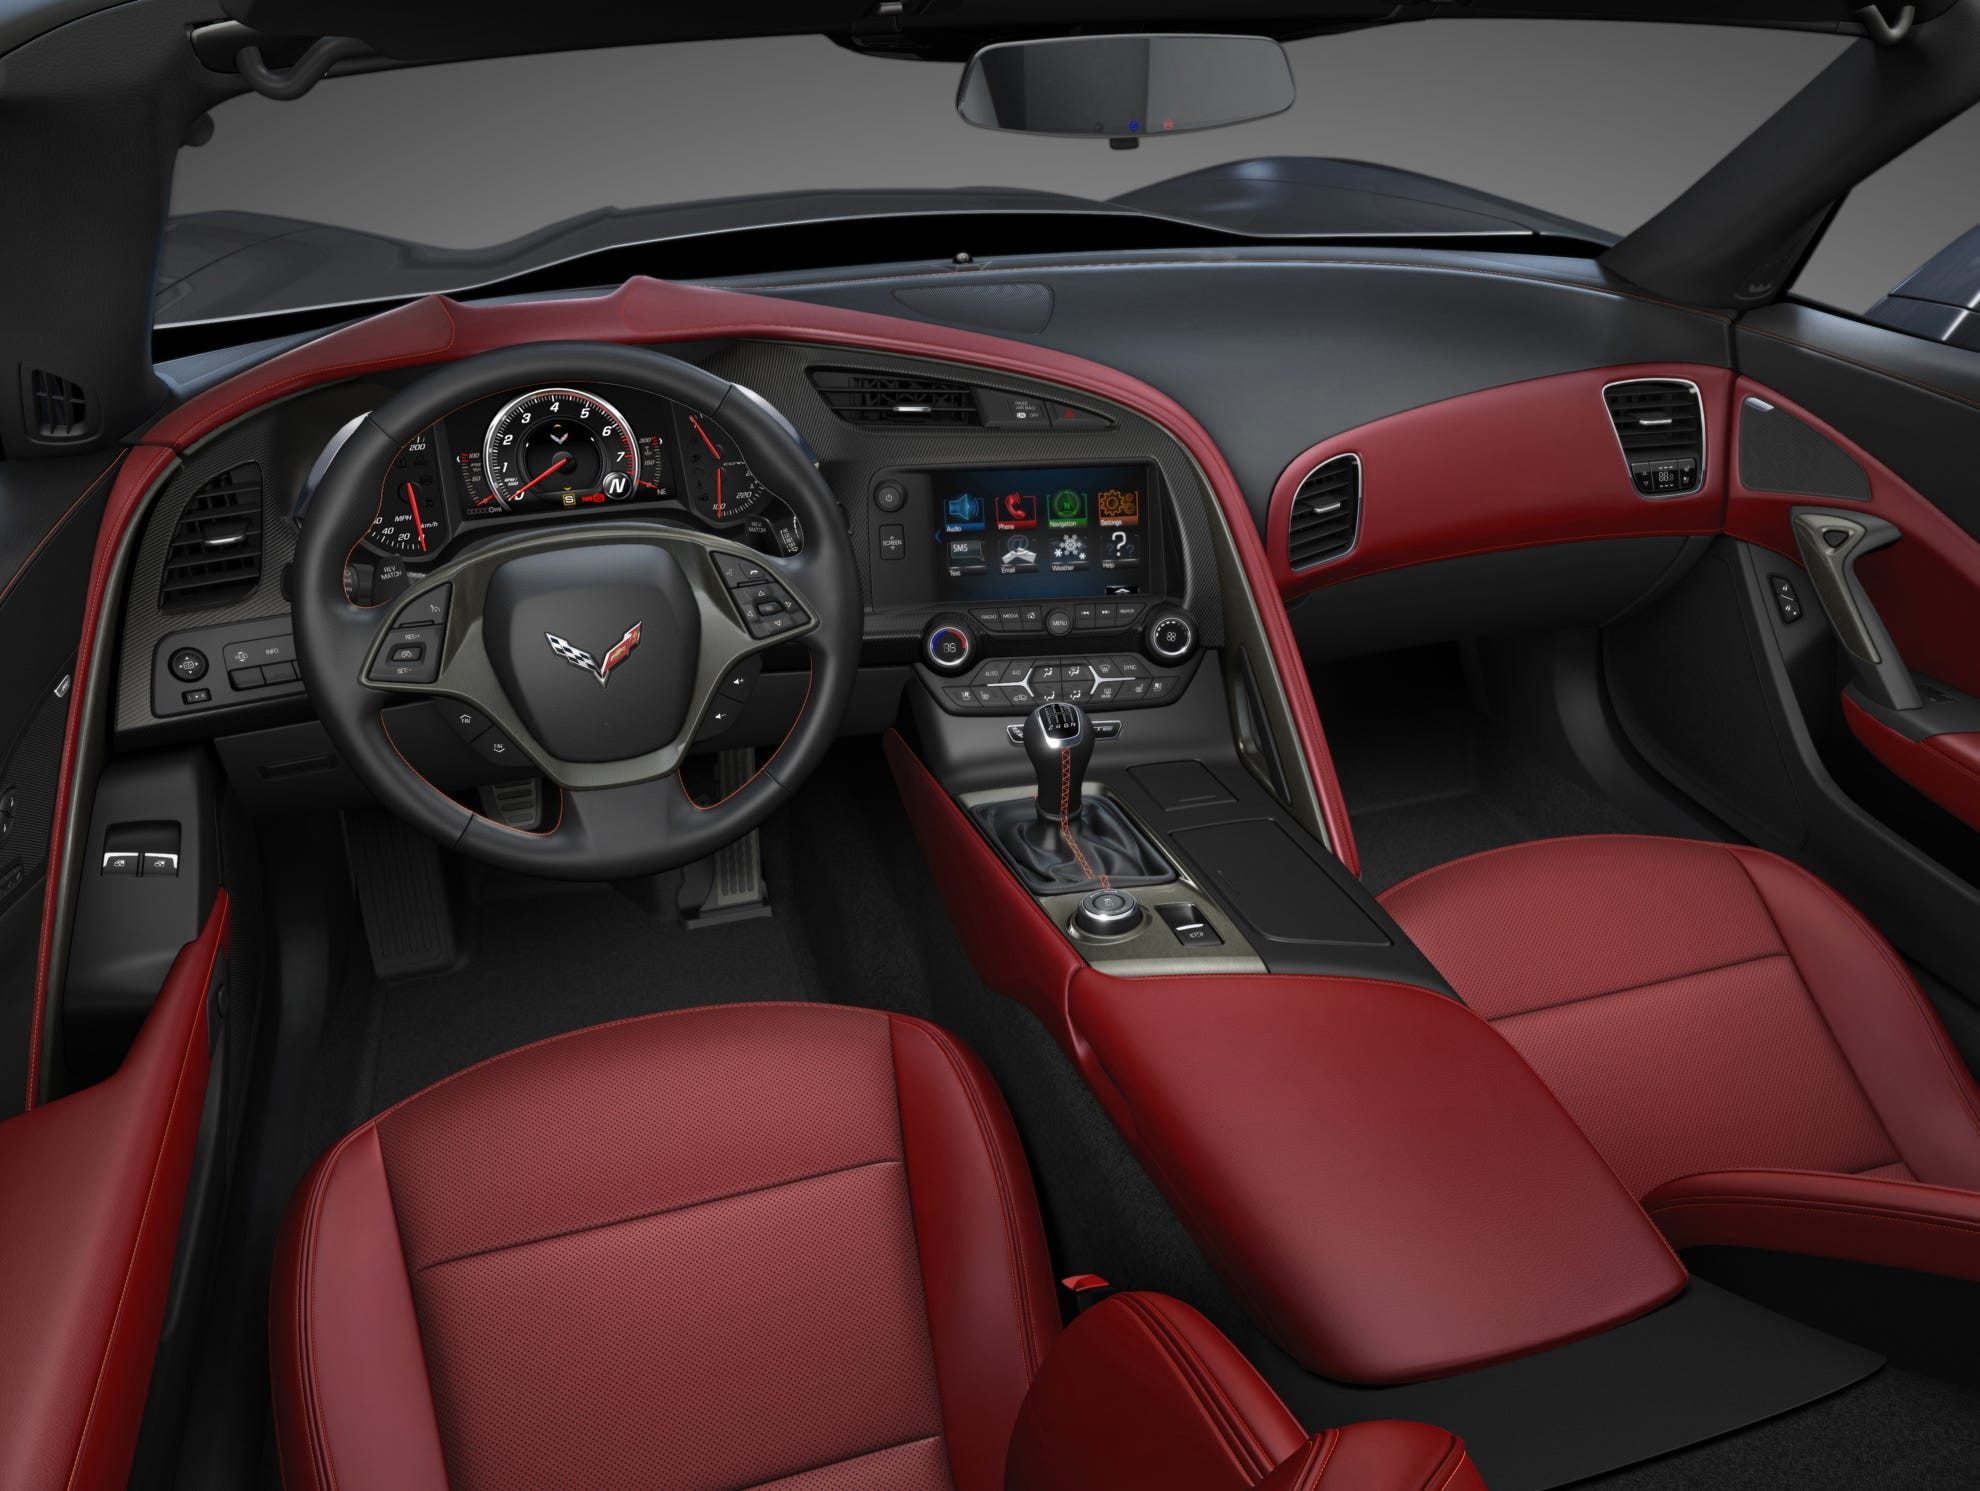 Designers for the 2014 Corvette Stingray have created an upscale interior in look and materials that is a significant improvement over the C6 interior that some critics rapped as cheap in look and feel.